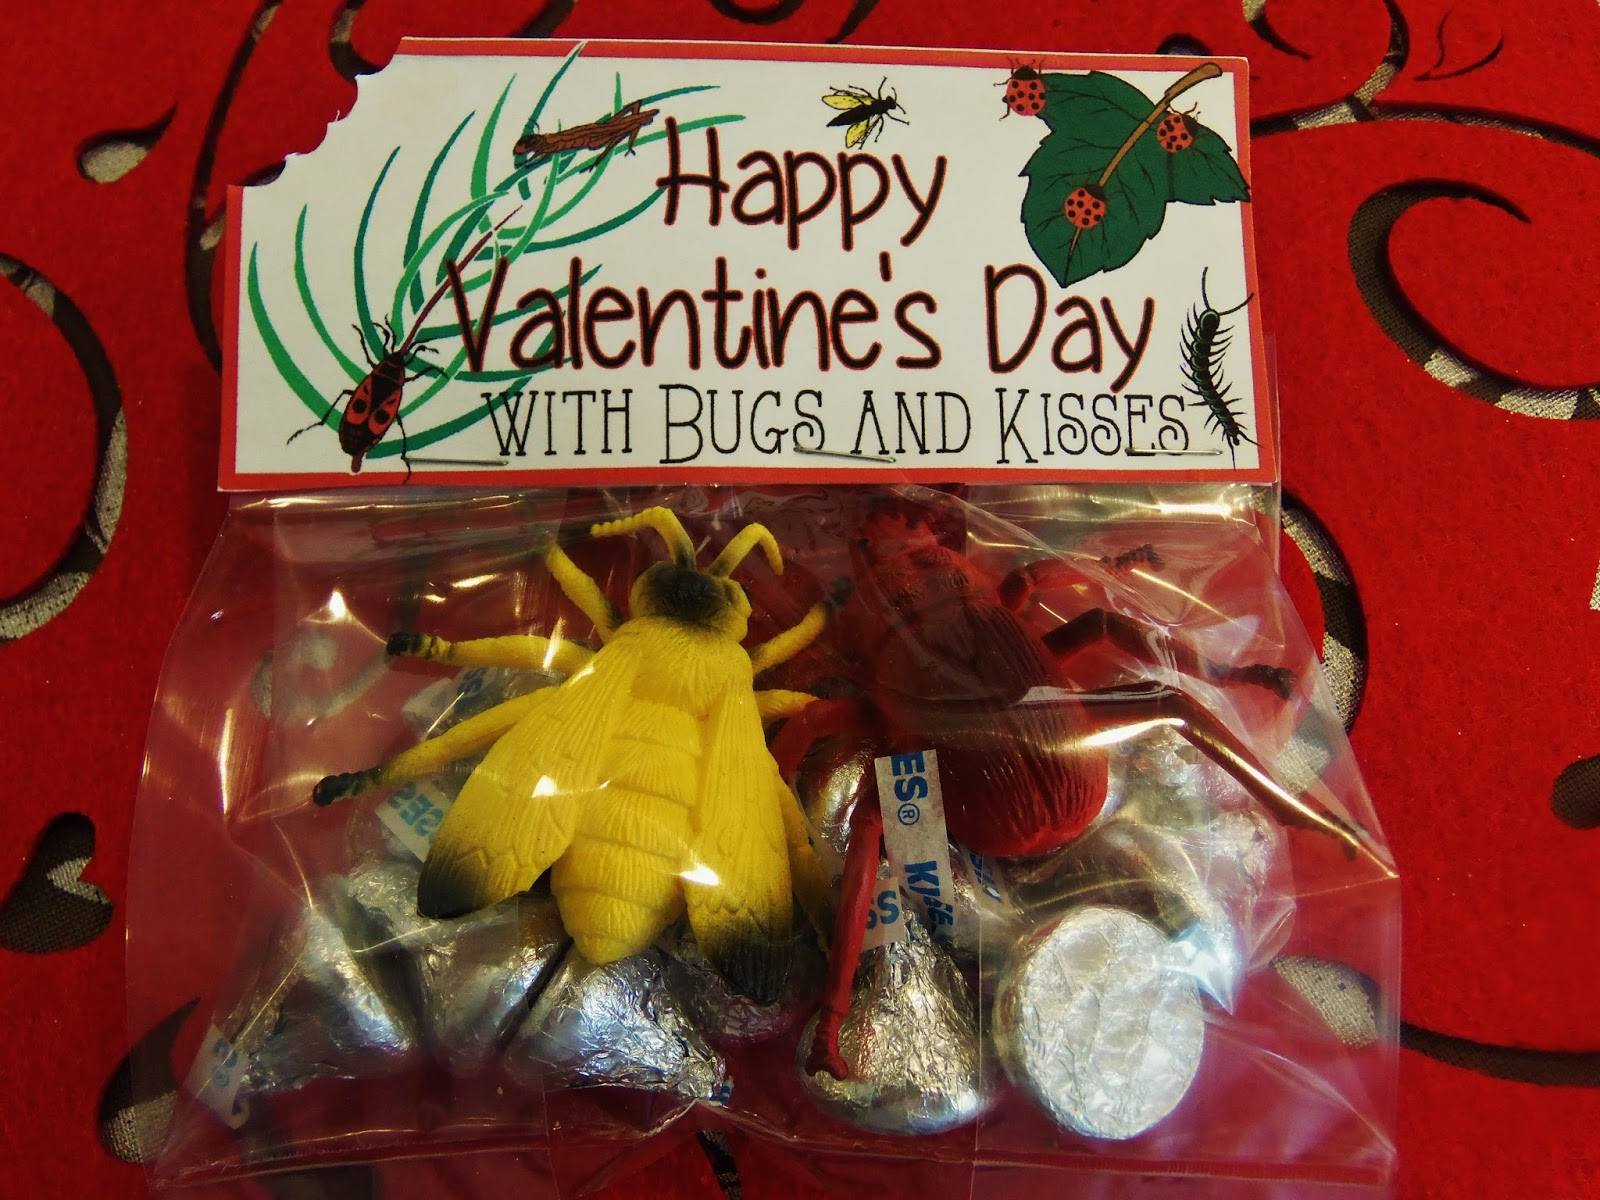 http://hollyshome-hollyshome.blogspot.com/2014/02/happy-valentines-day-with-bugs-and.html